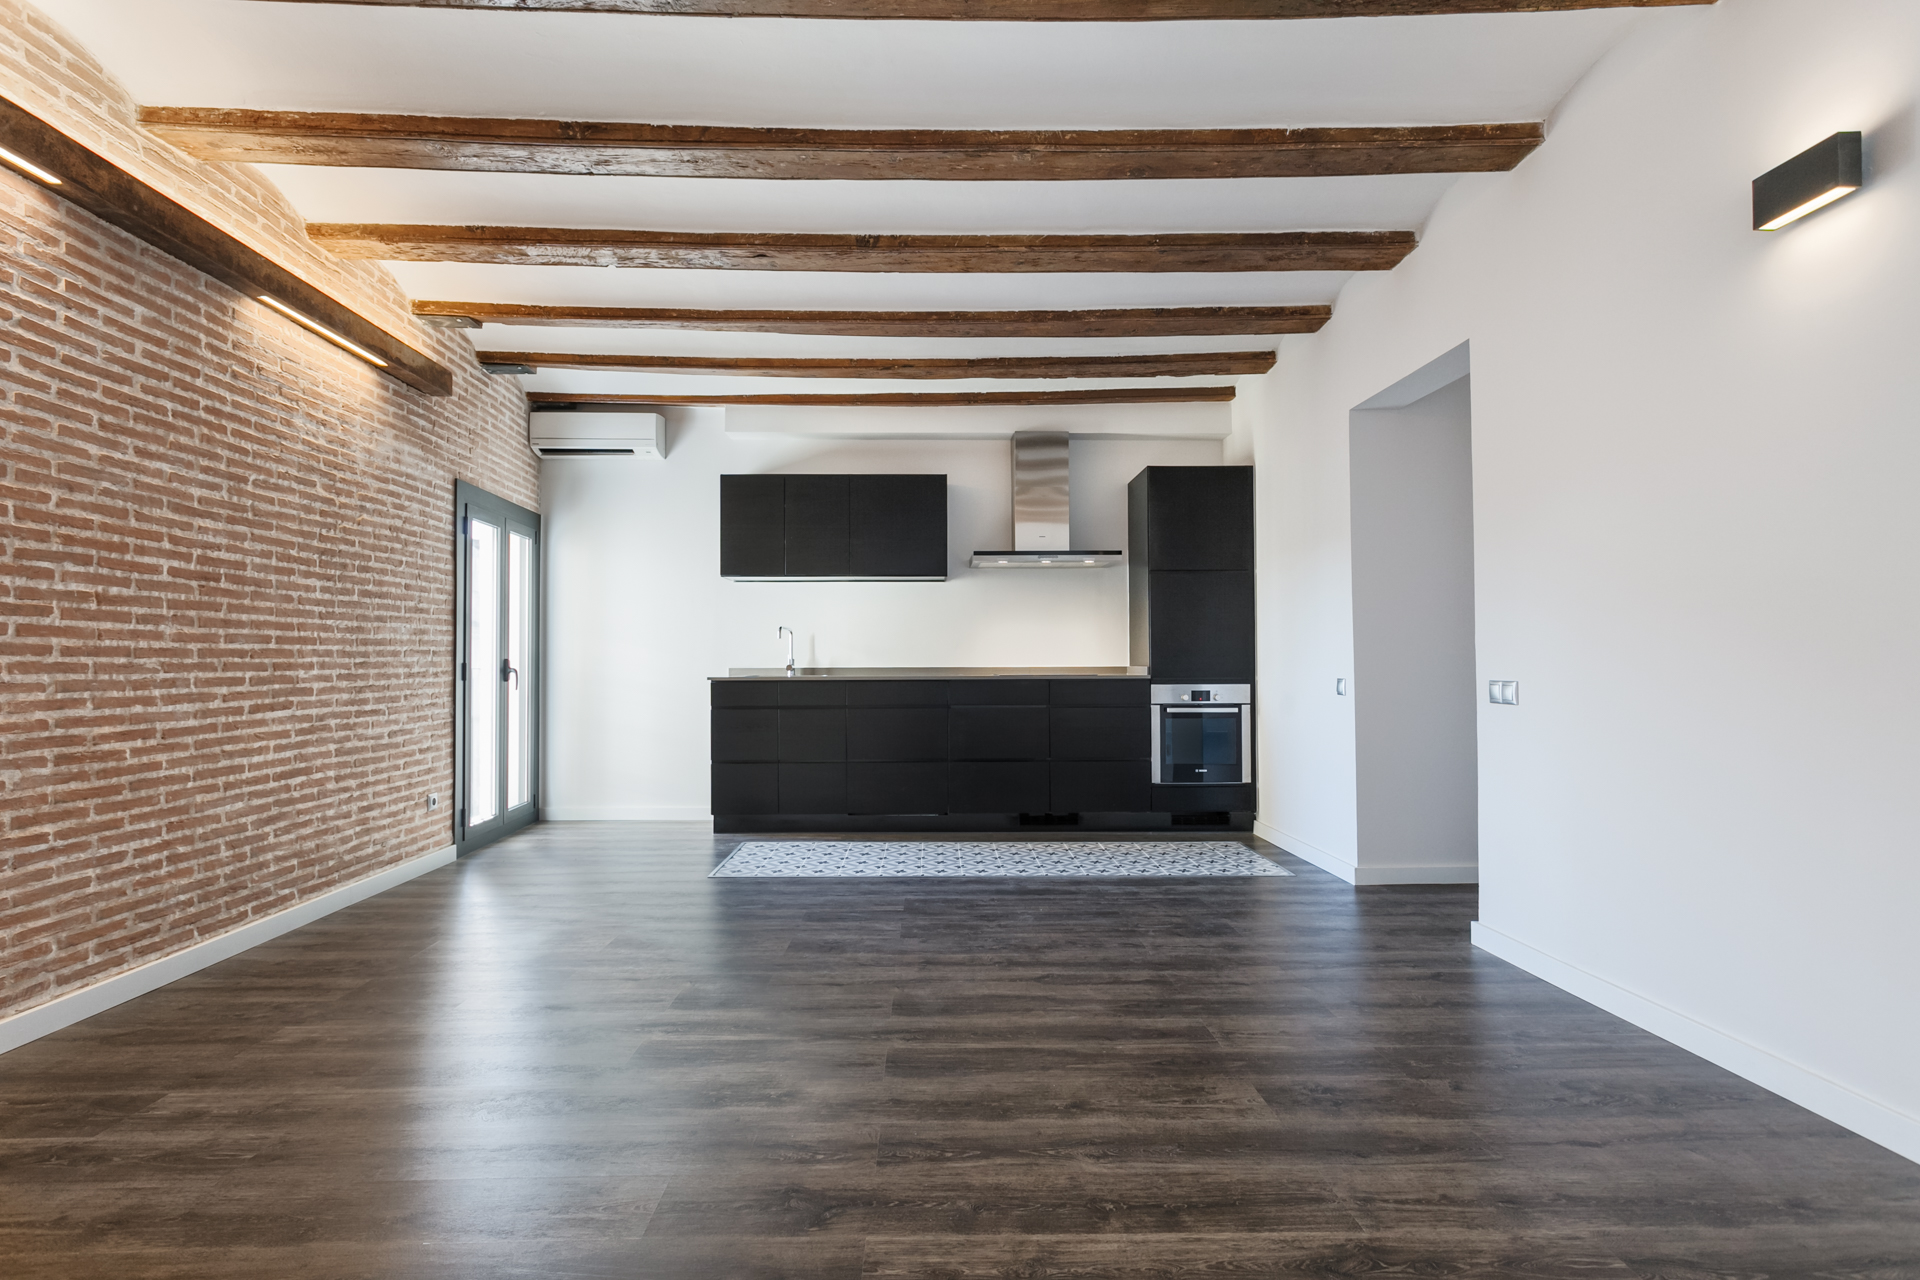 Apartment for Sale at Excellent Property in the Heart of the Born Old Town Ciutat Vella, Barcelona City, Barcelona 08002 Spain